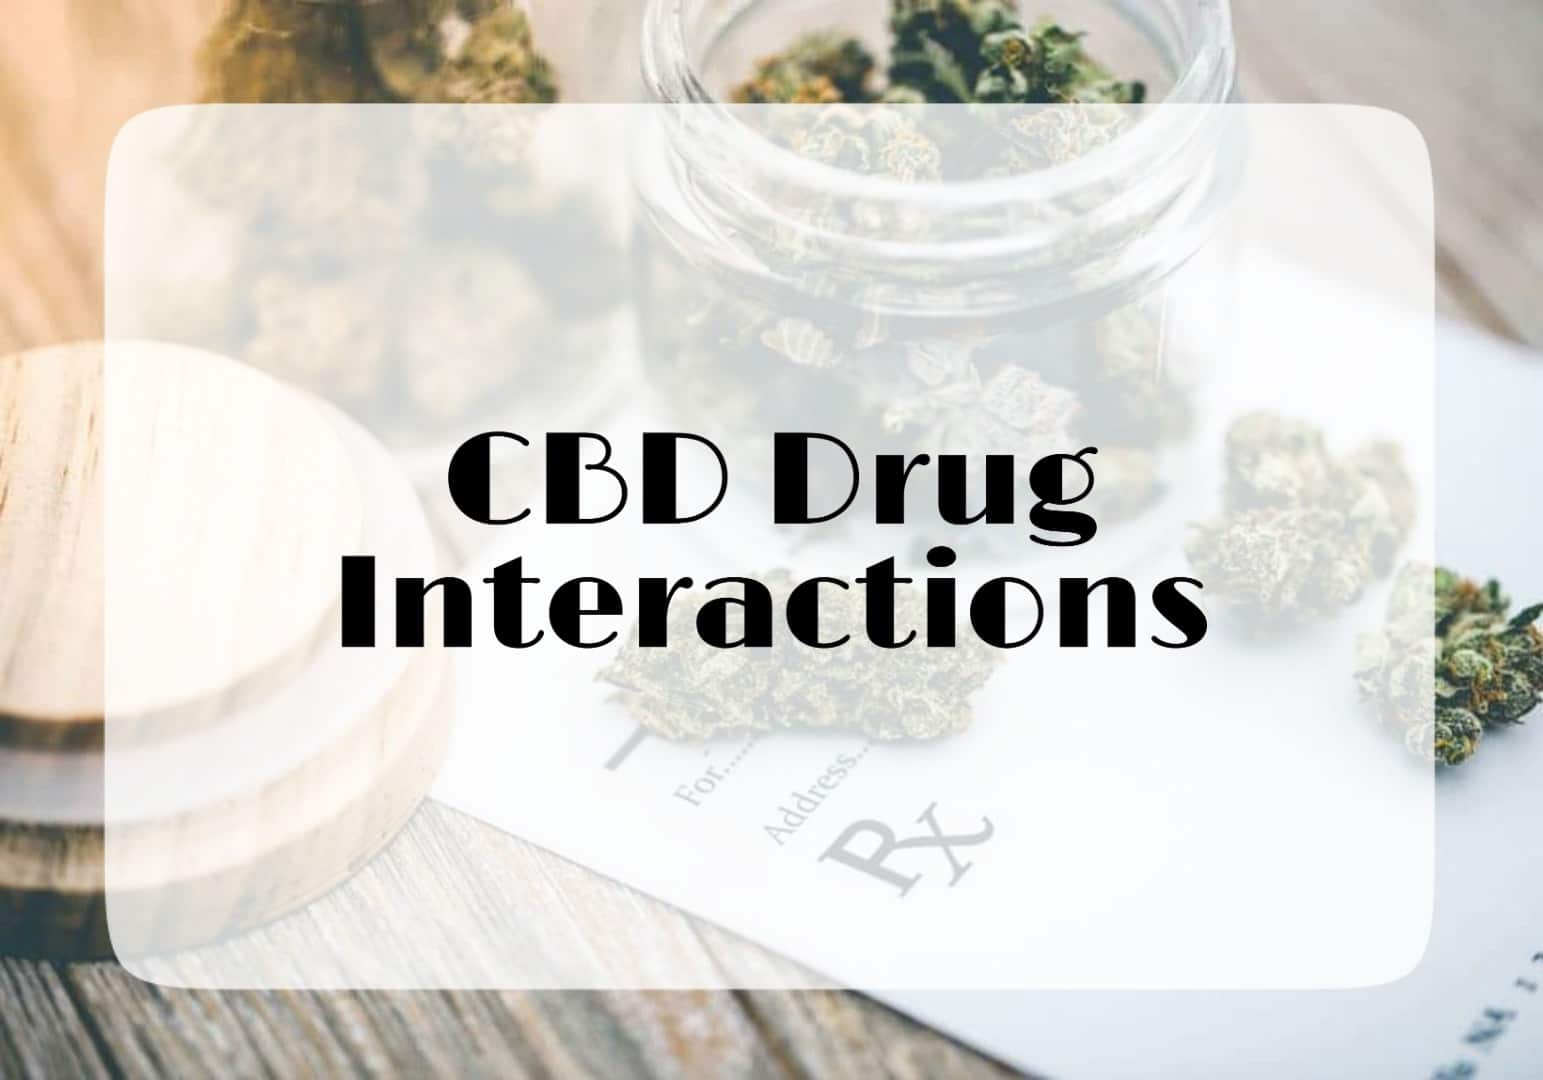 CBD Drug Interactions - A Must Read